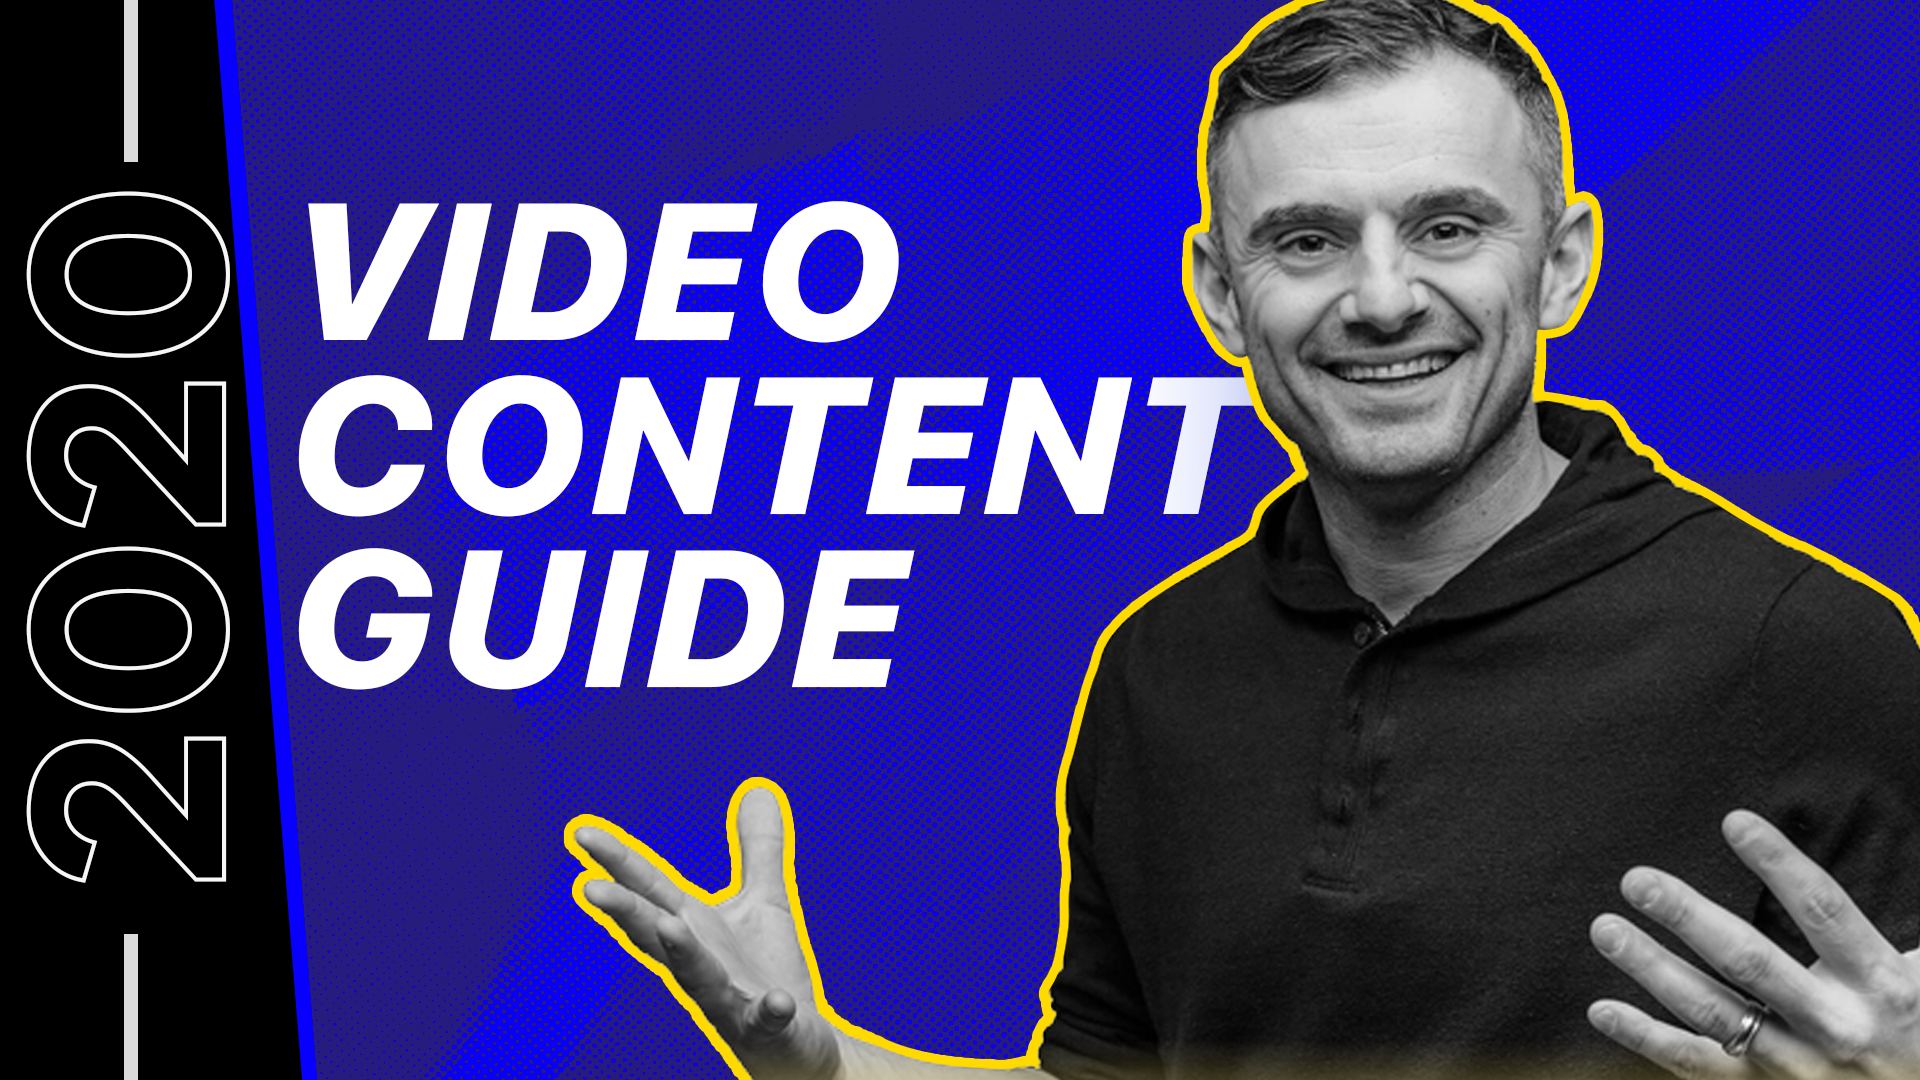 A Quick-Start Guide To Video Content: Make Better Video in 5 Steps